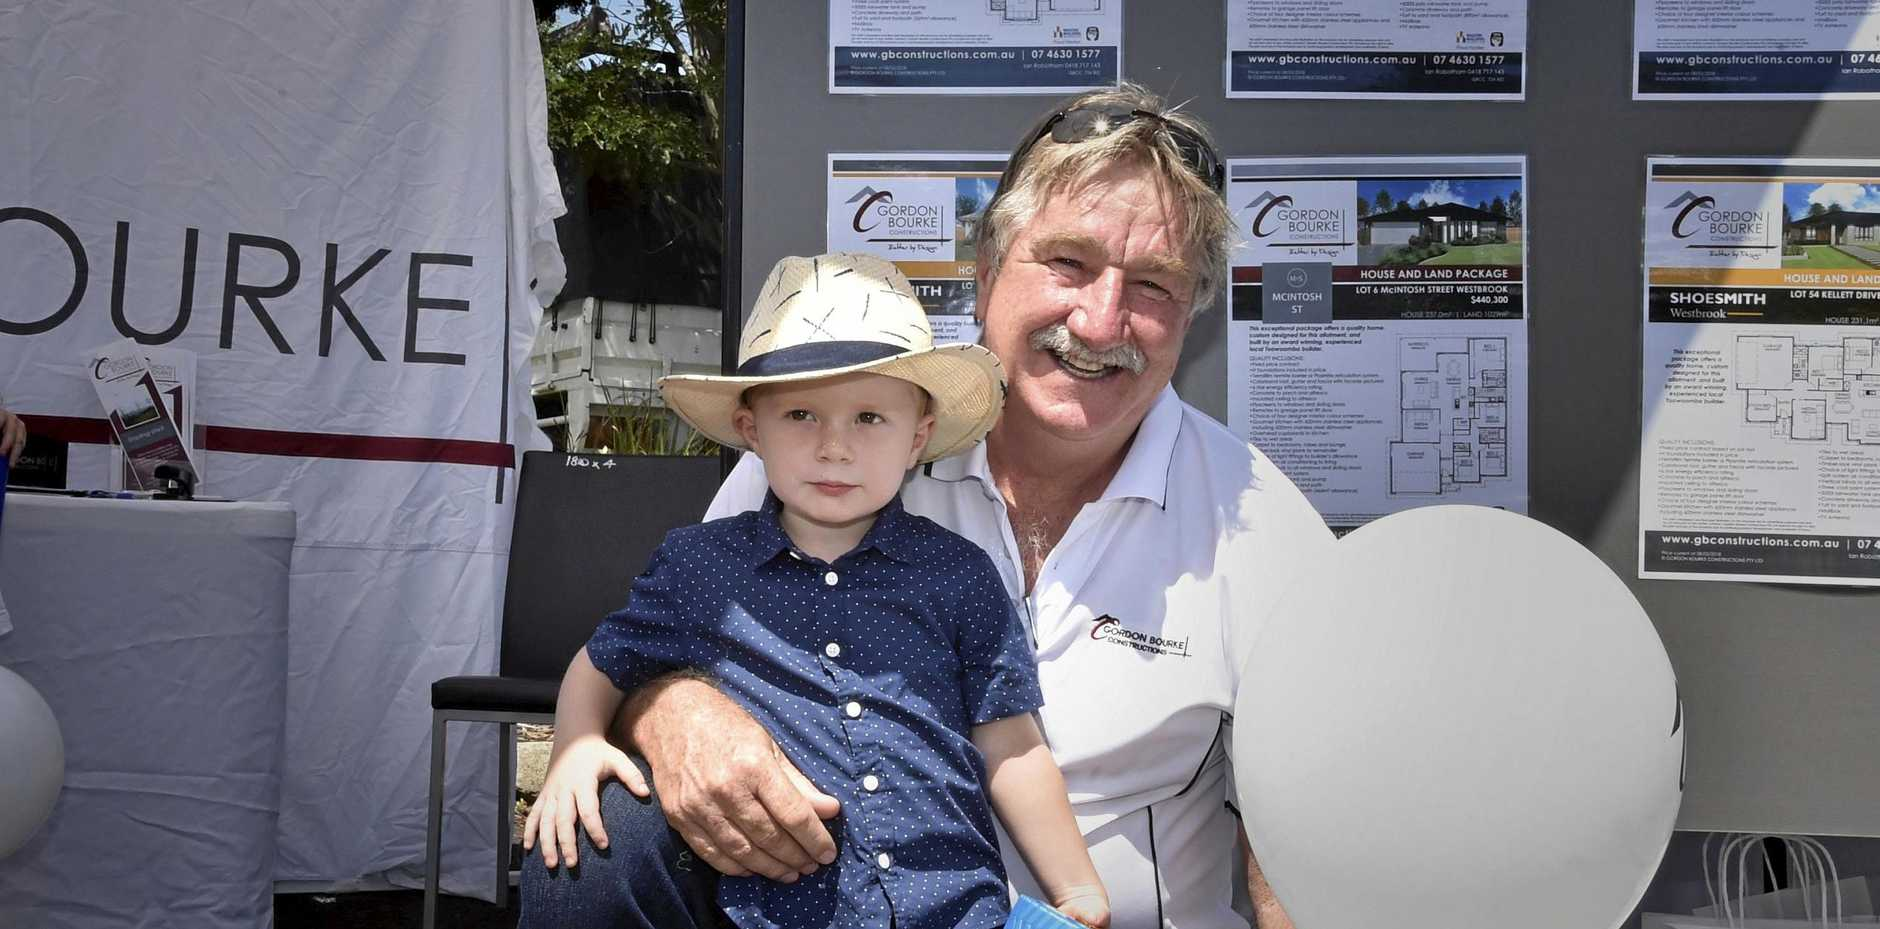 ON DISPLAY: Harry Golebly, 3, looked stylish with his grandfather Ian Robotham, from Gordon Bourke Constructions, at the House and Land Expo on Saturday.